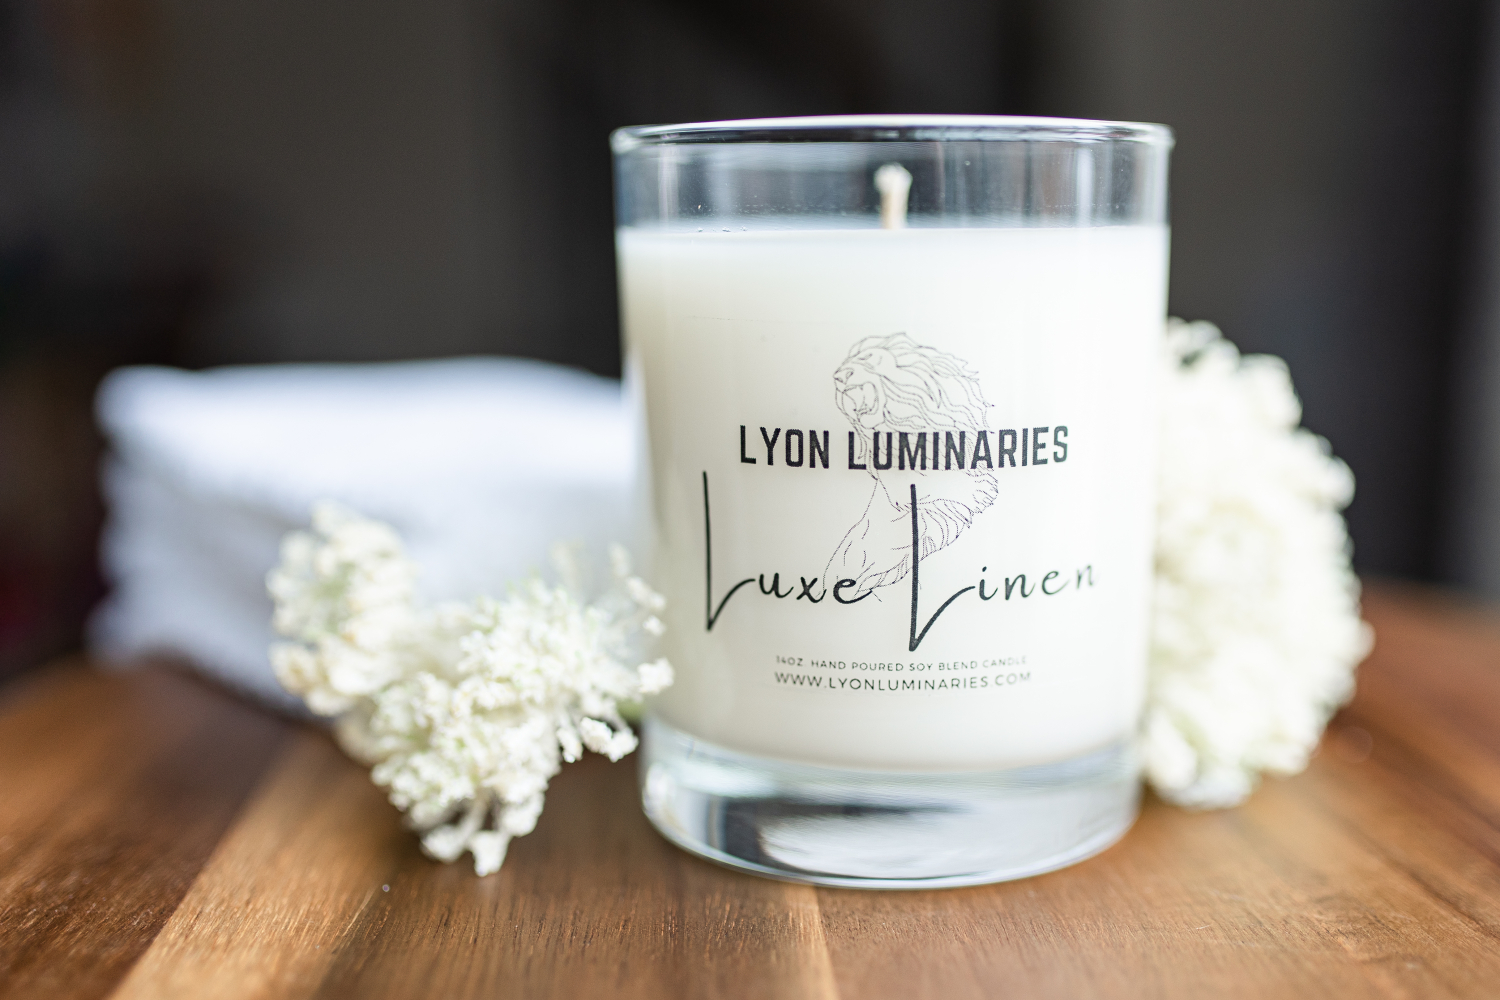 Luxe Linen Soy Blend Candle